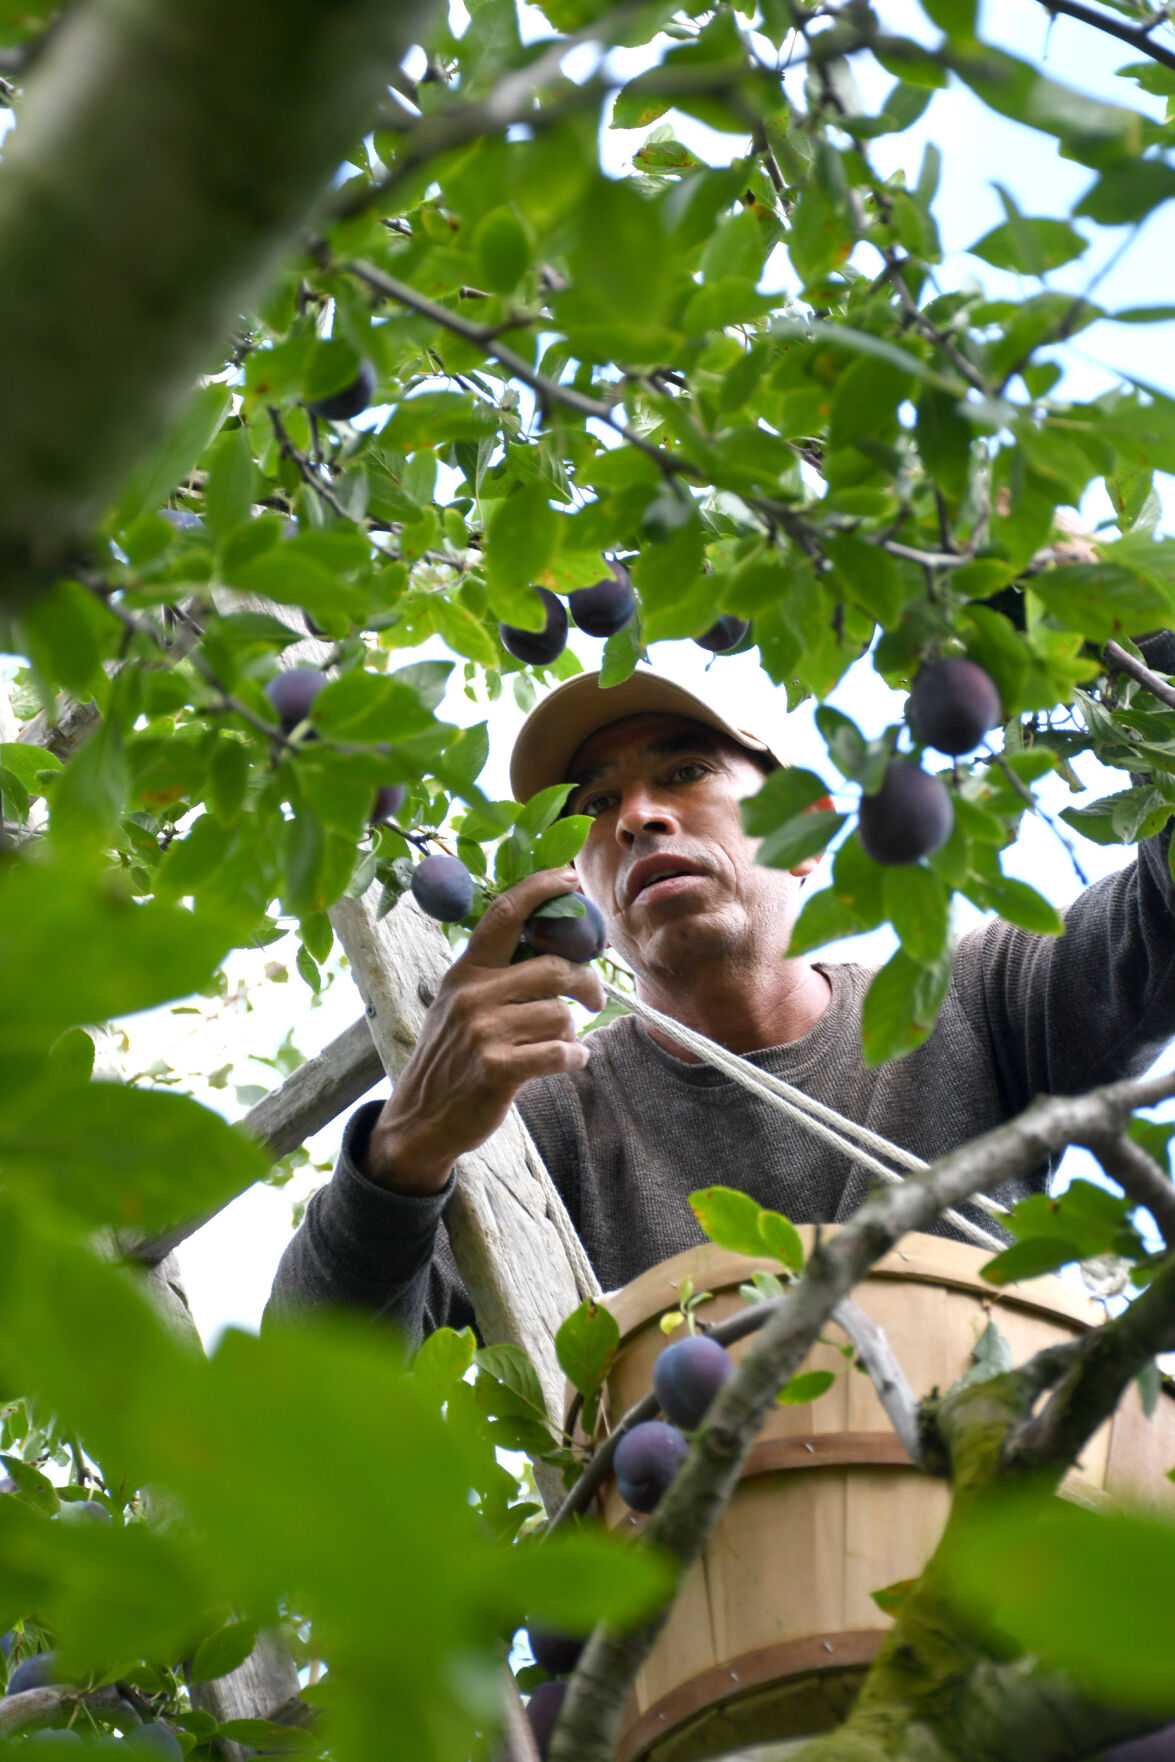 A man picks plums from a tree